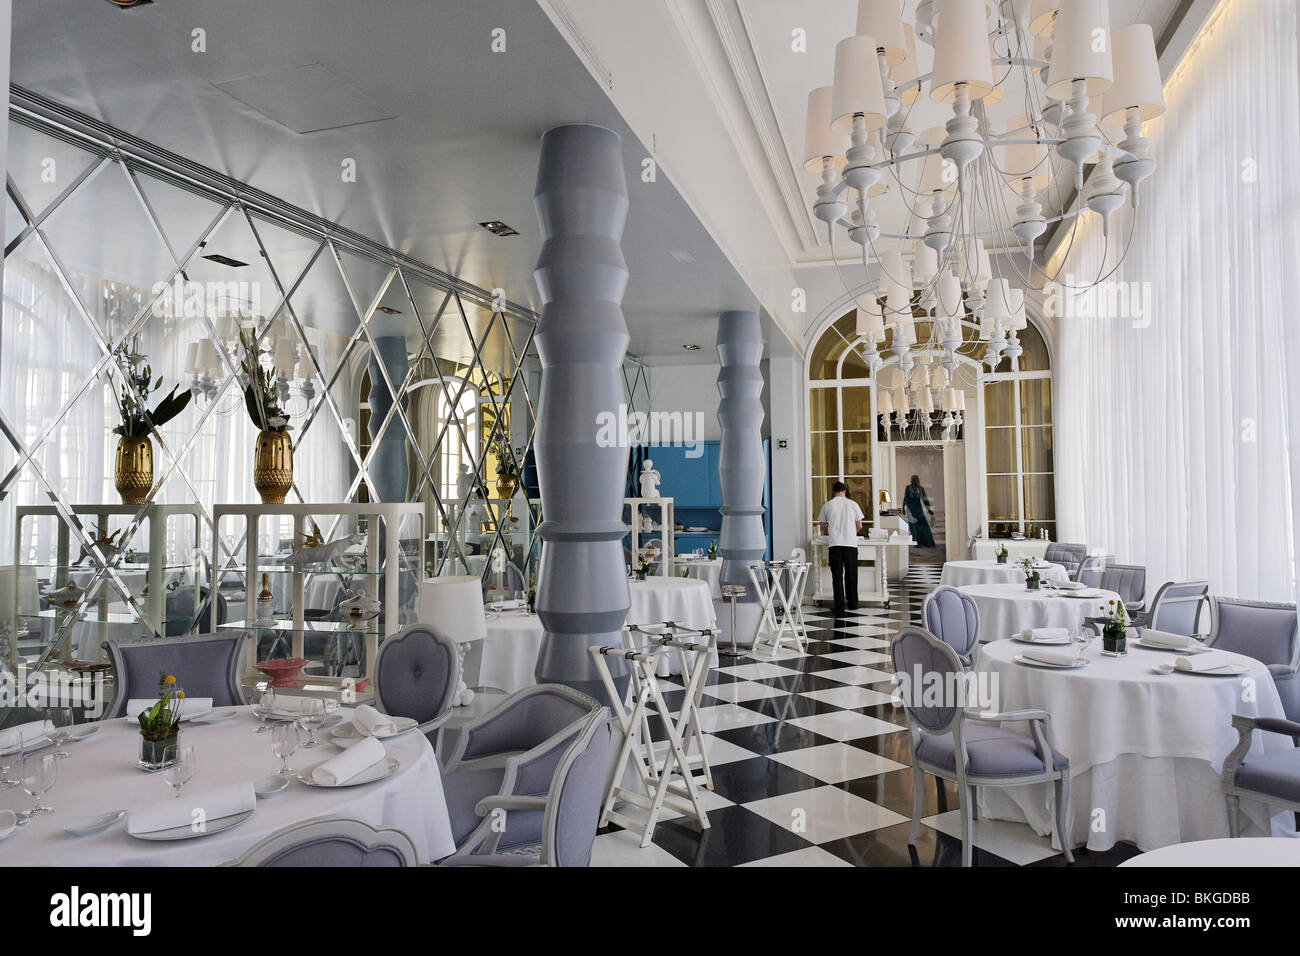 Inside The Restaurant La Terraza Del Casino Madrid Spain